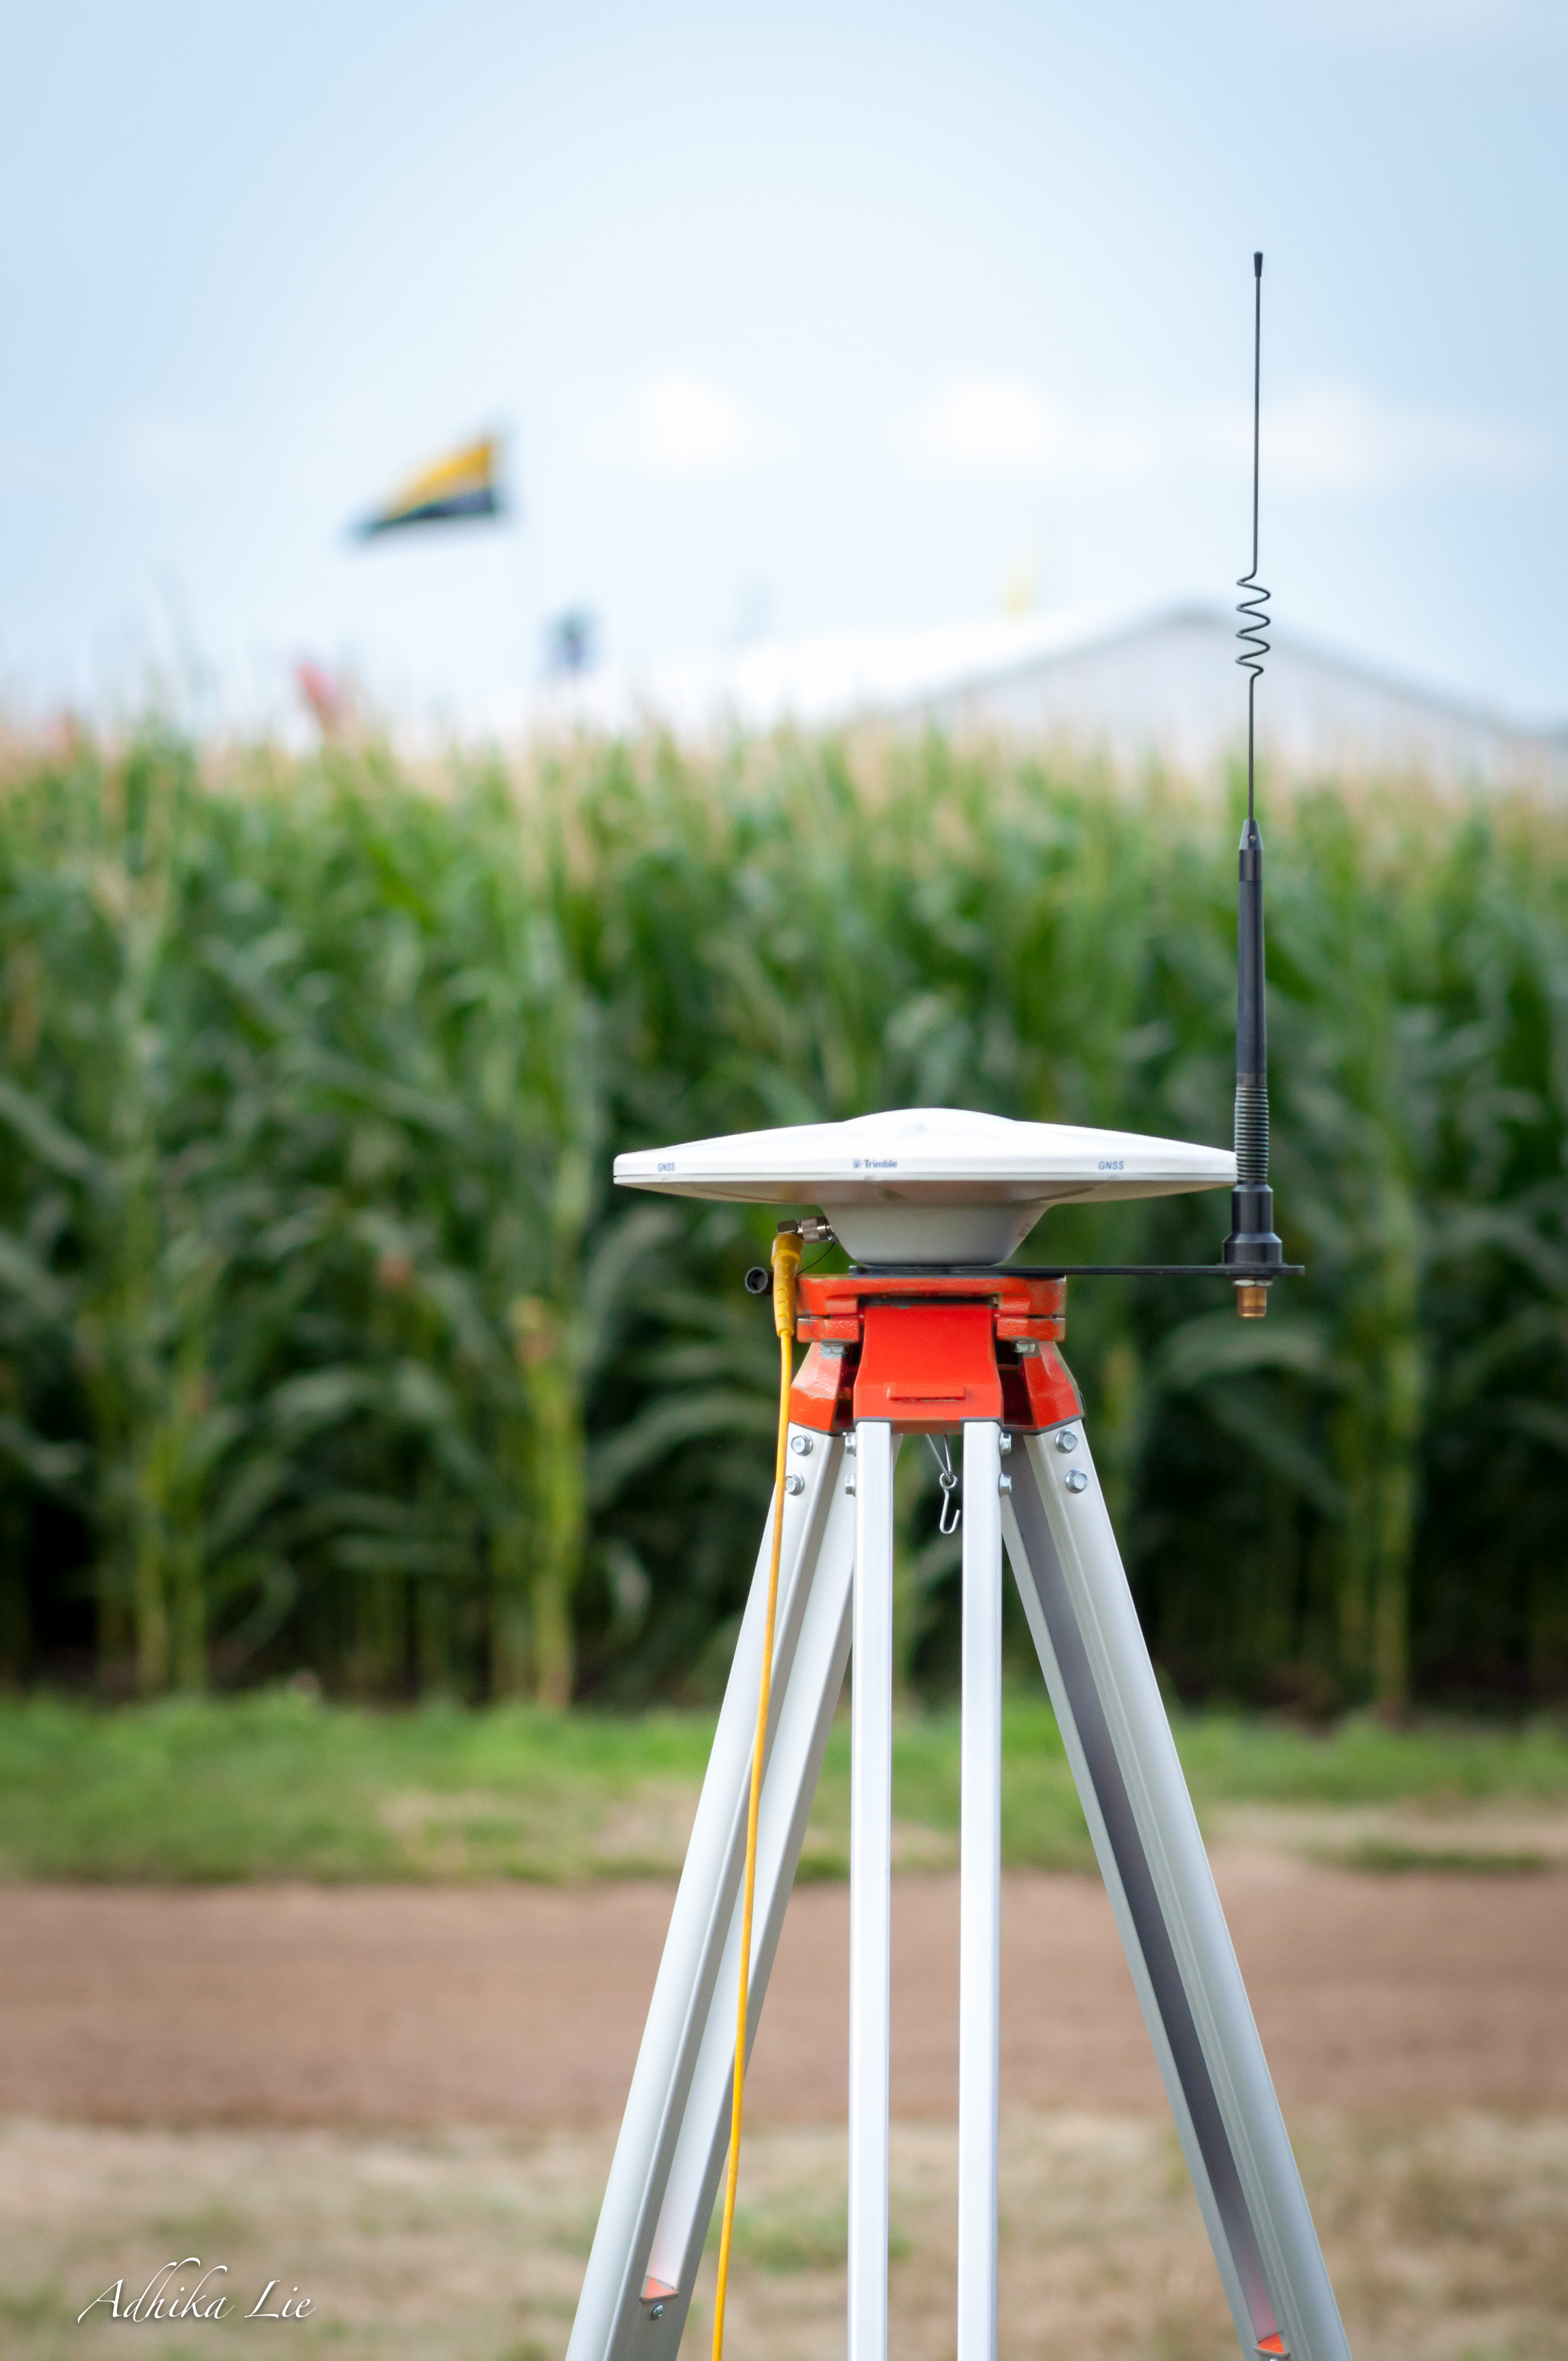 RTK-Capable Trimble Receiver